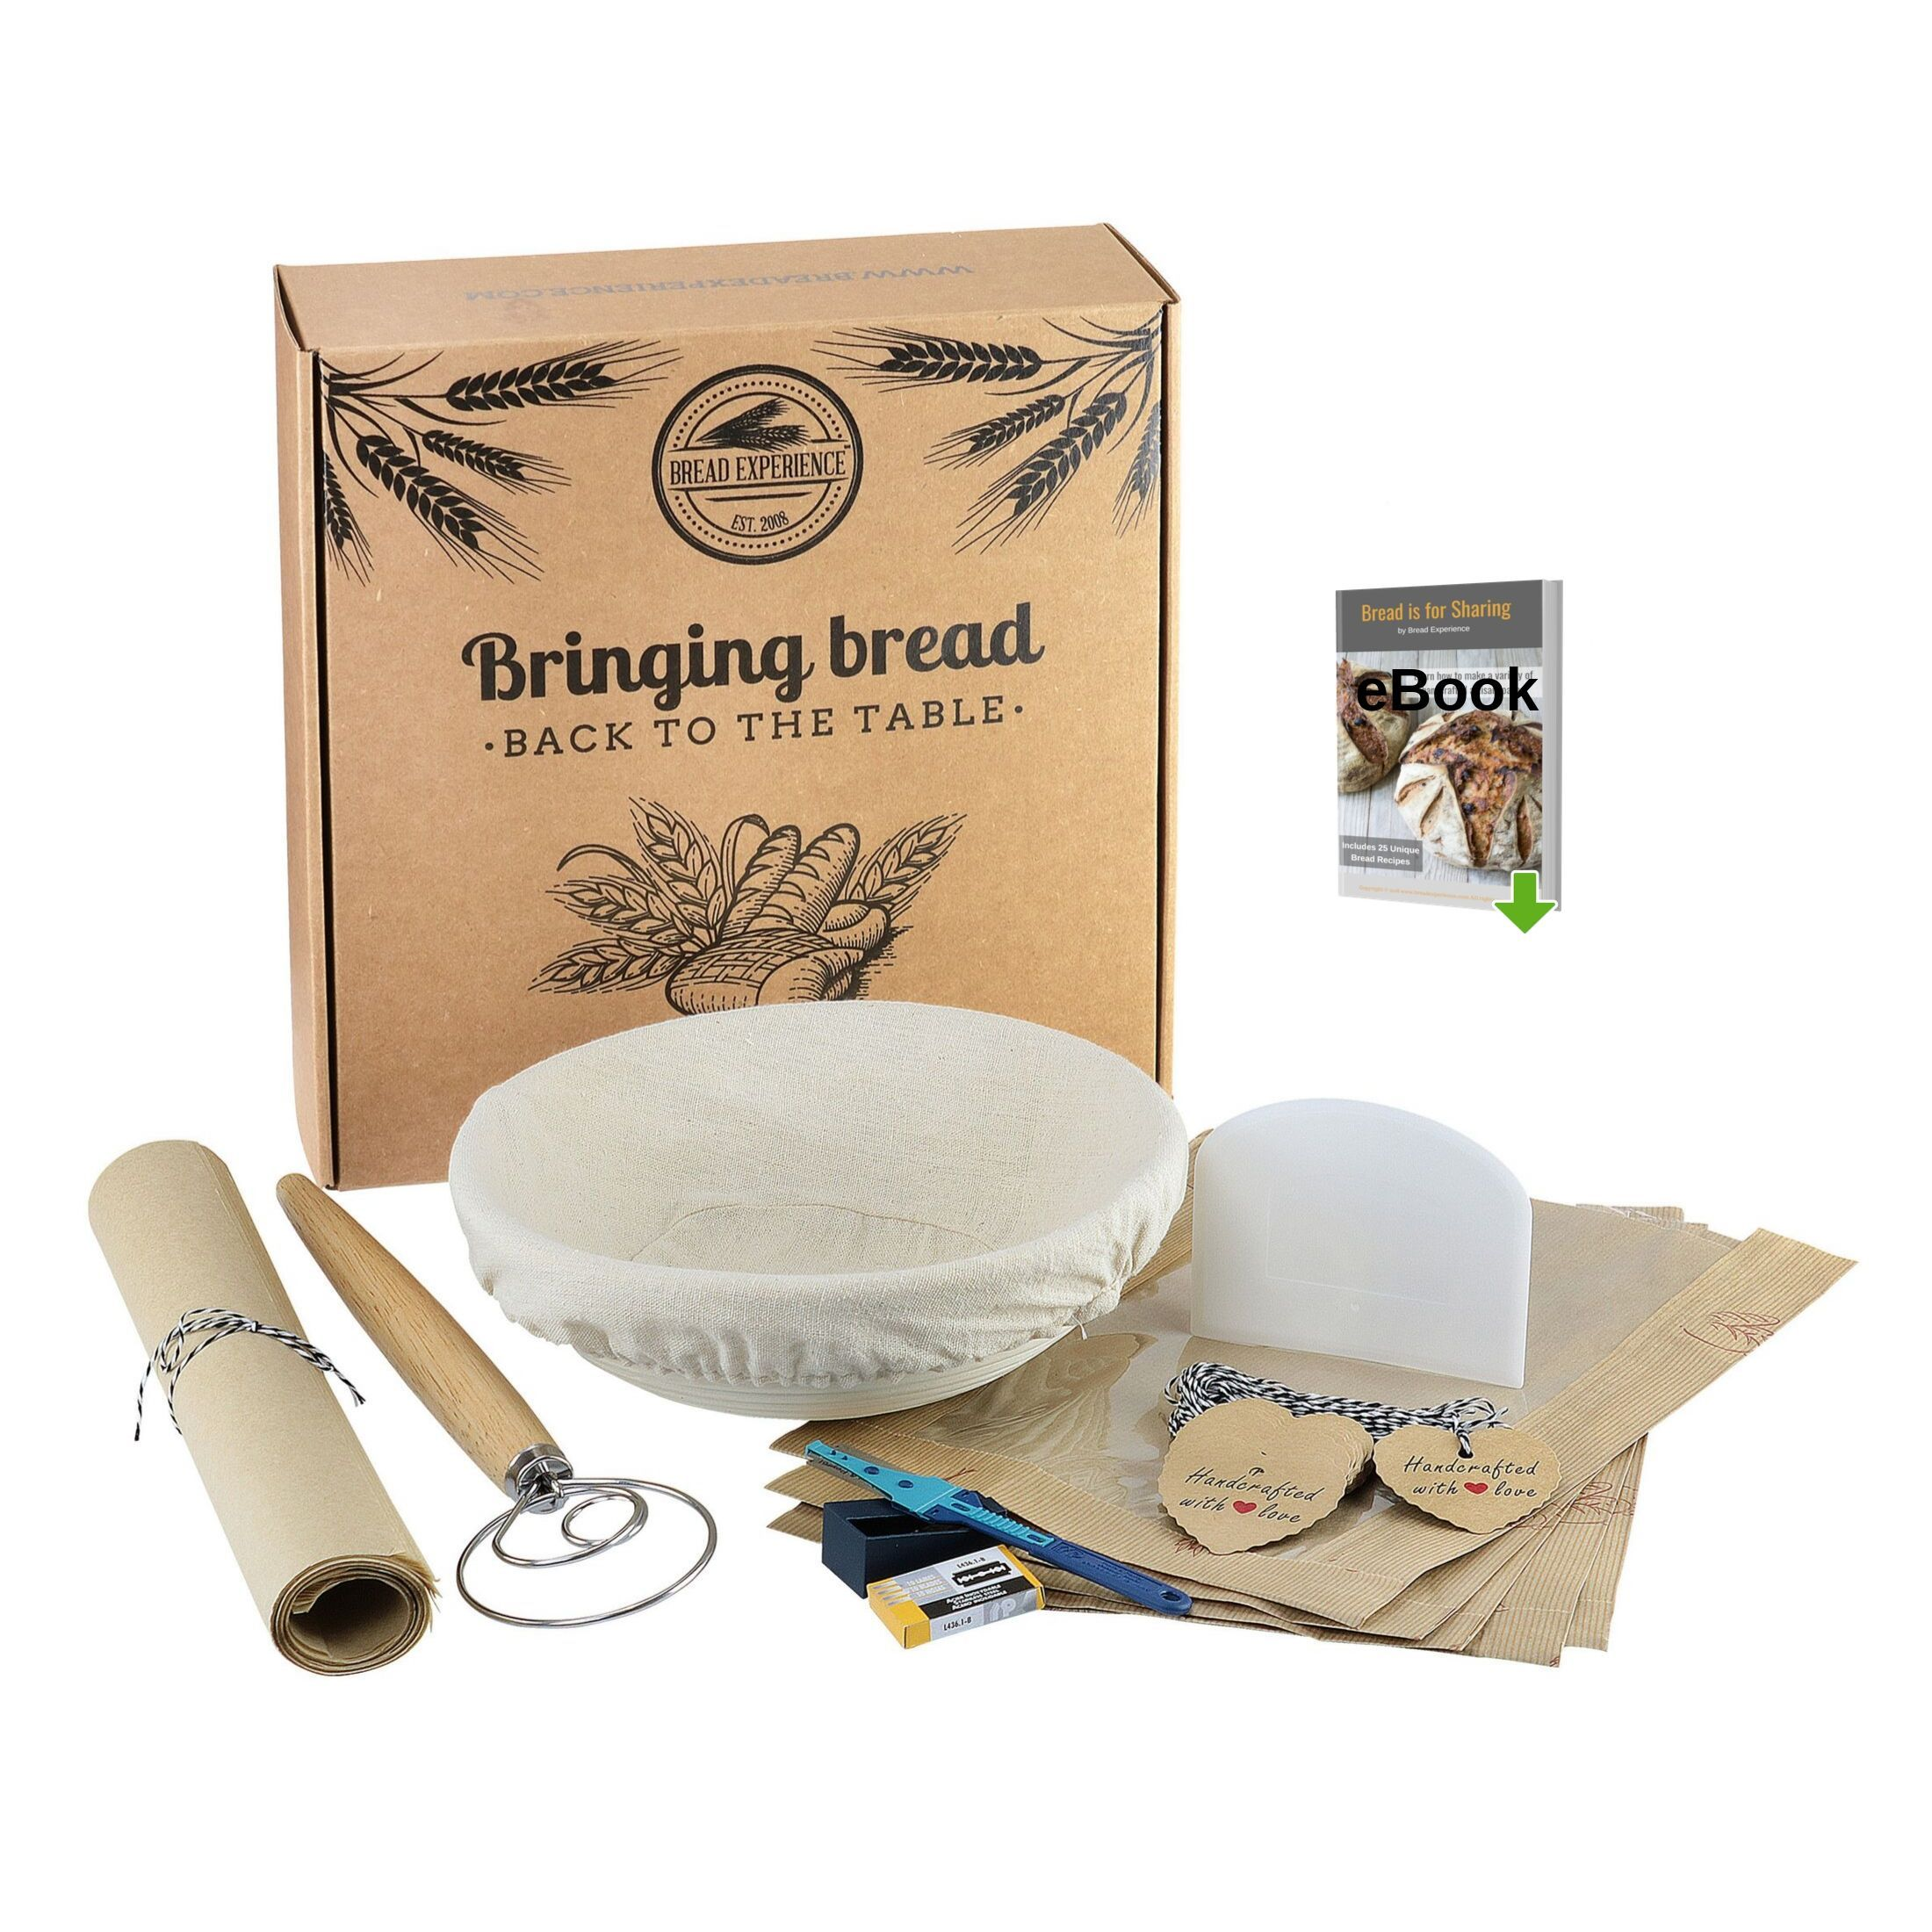 Artisan Home Bread Making Kit Bread Sharing Box Bread Experience How To Make Bread Proofing Baskets Baking Kit